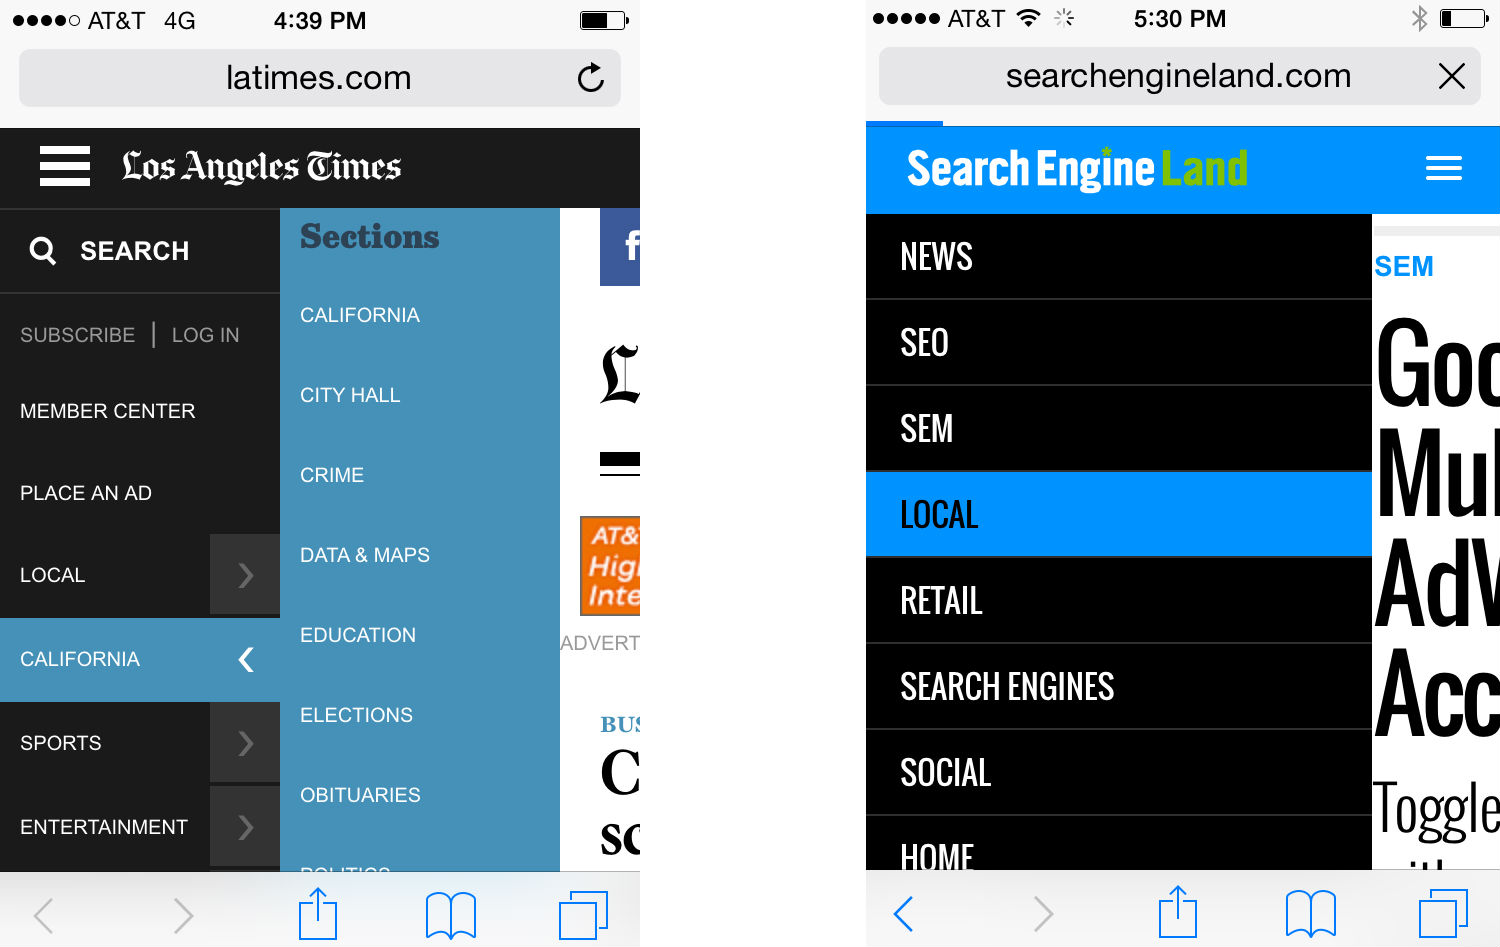 examples-of-touch-reactive-mobile-navigation